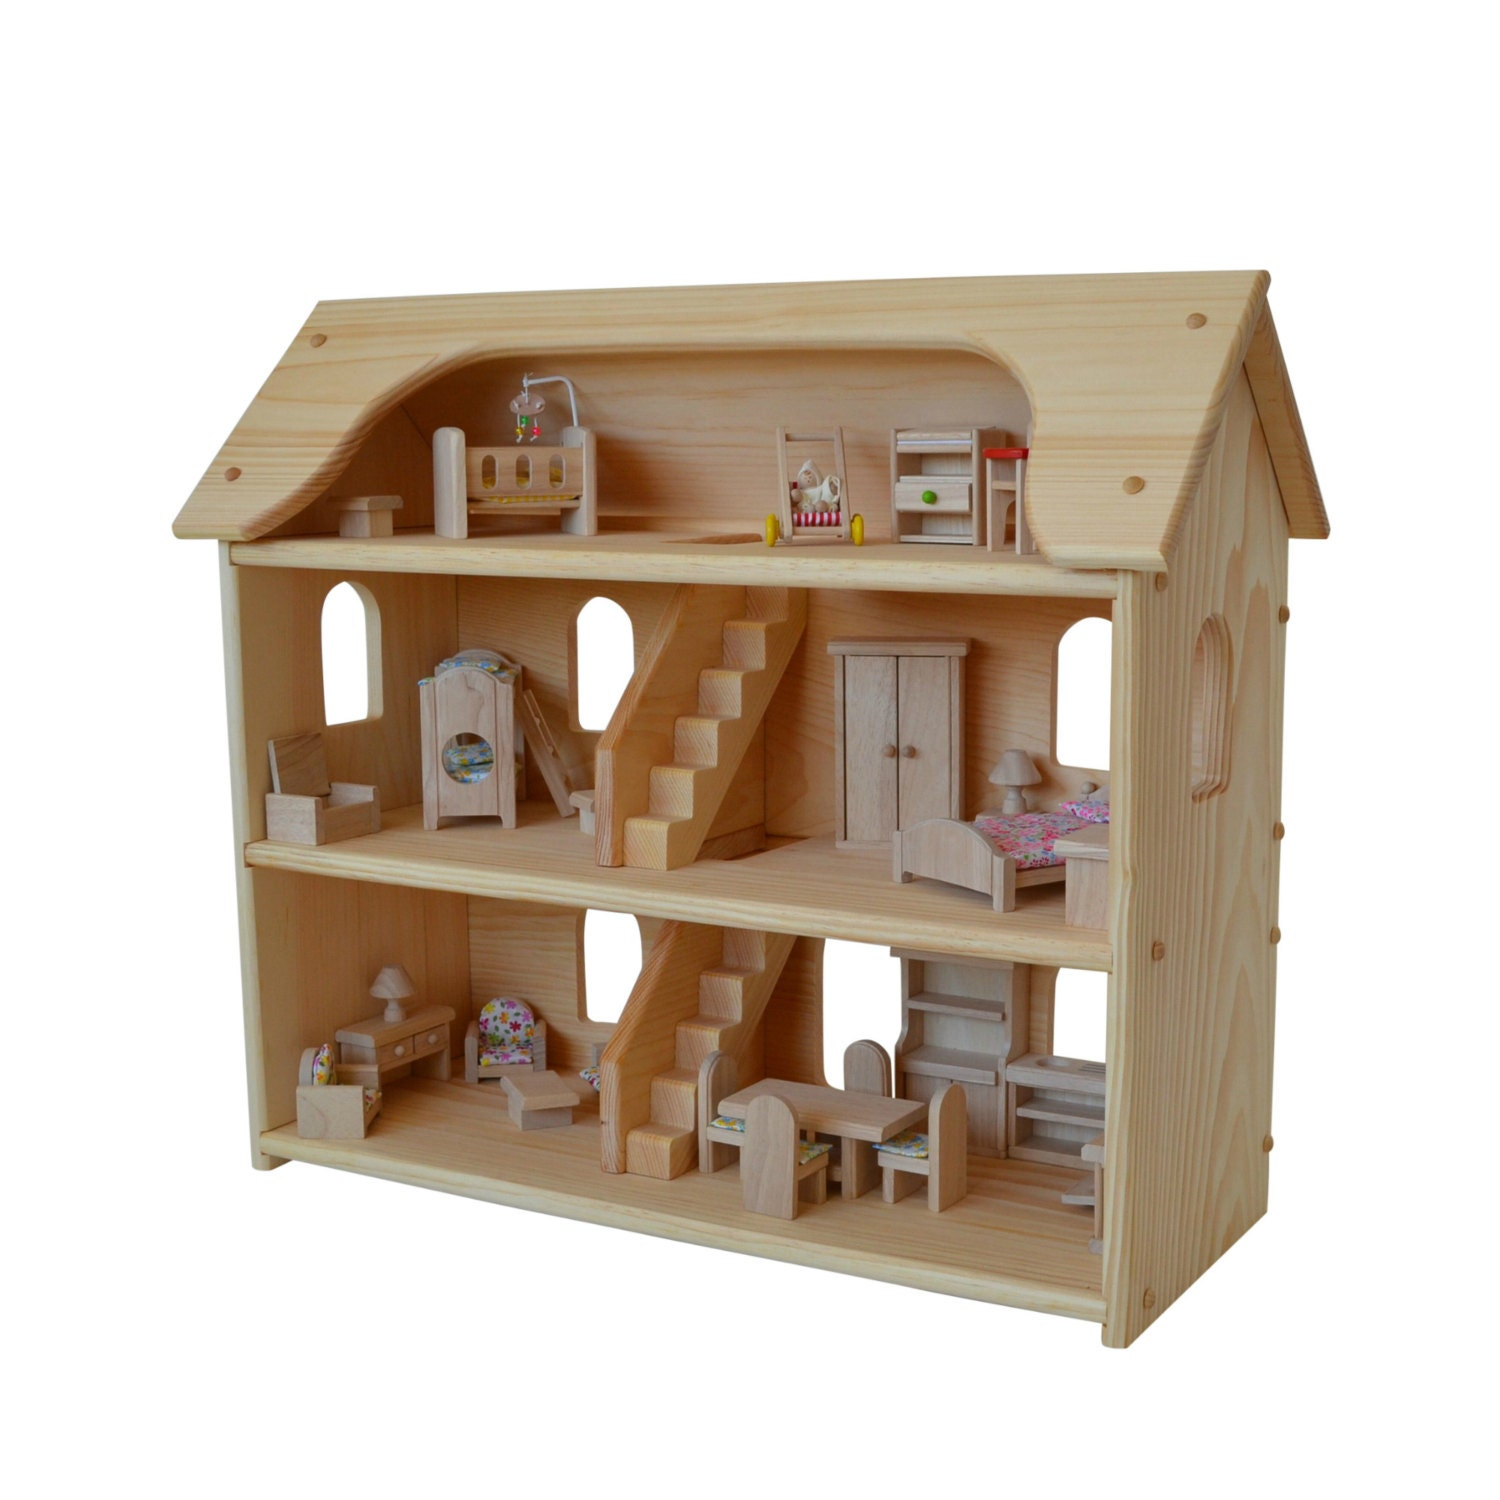 Handcrafted Natural Wooden Toy Dollhouse Set-Waldorf